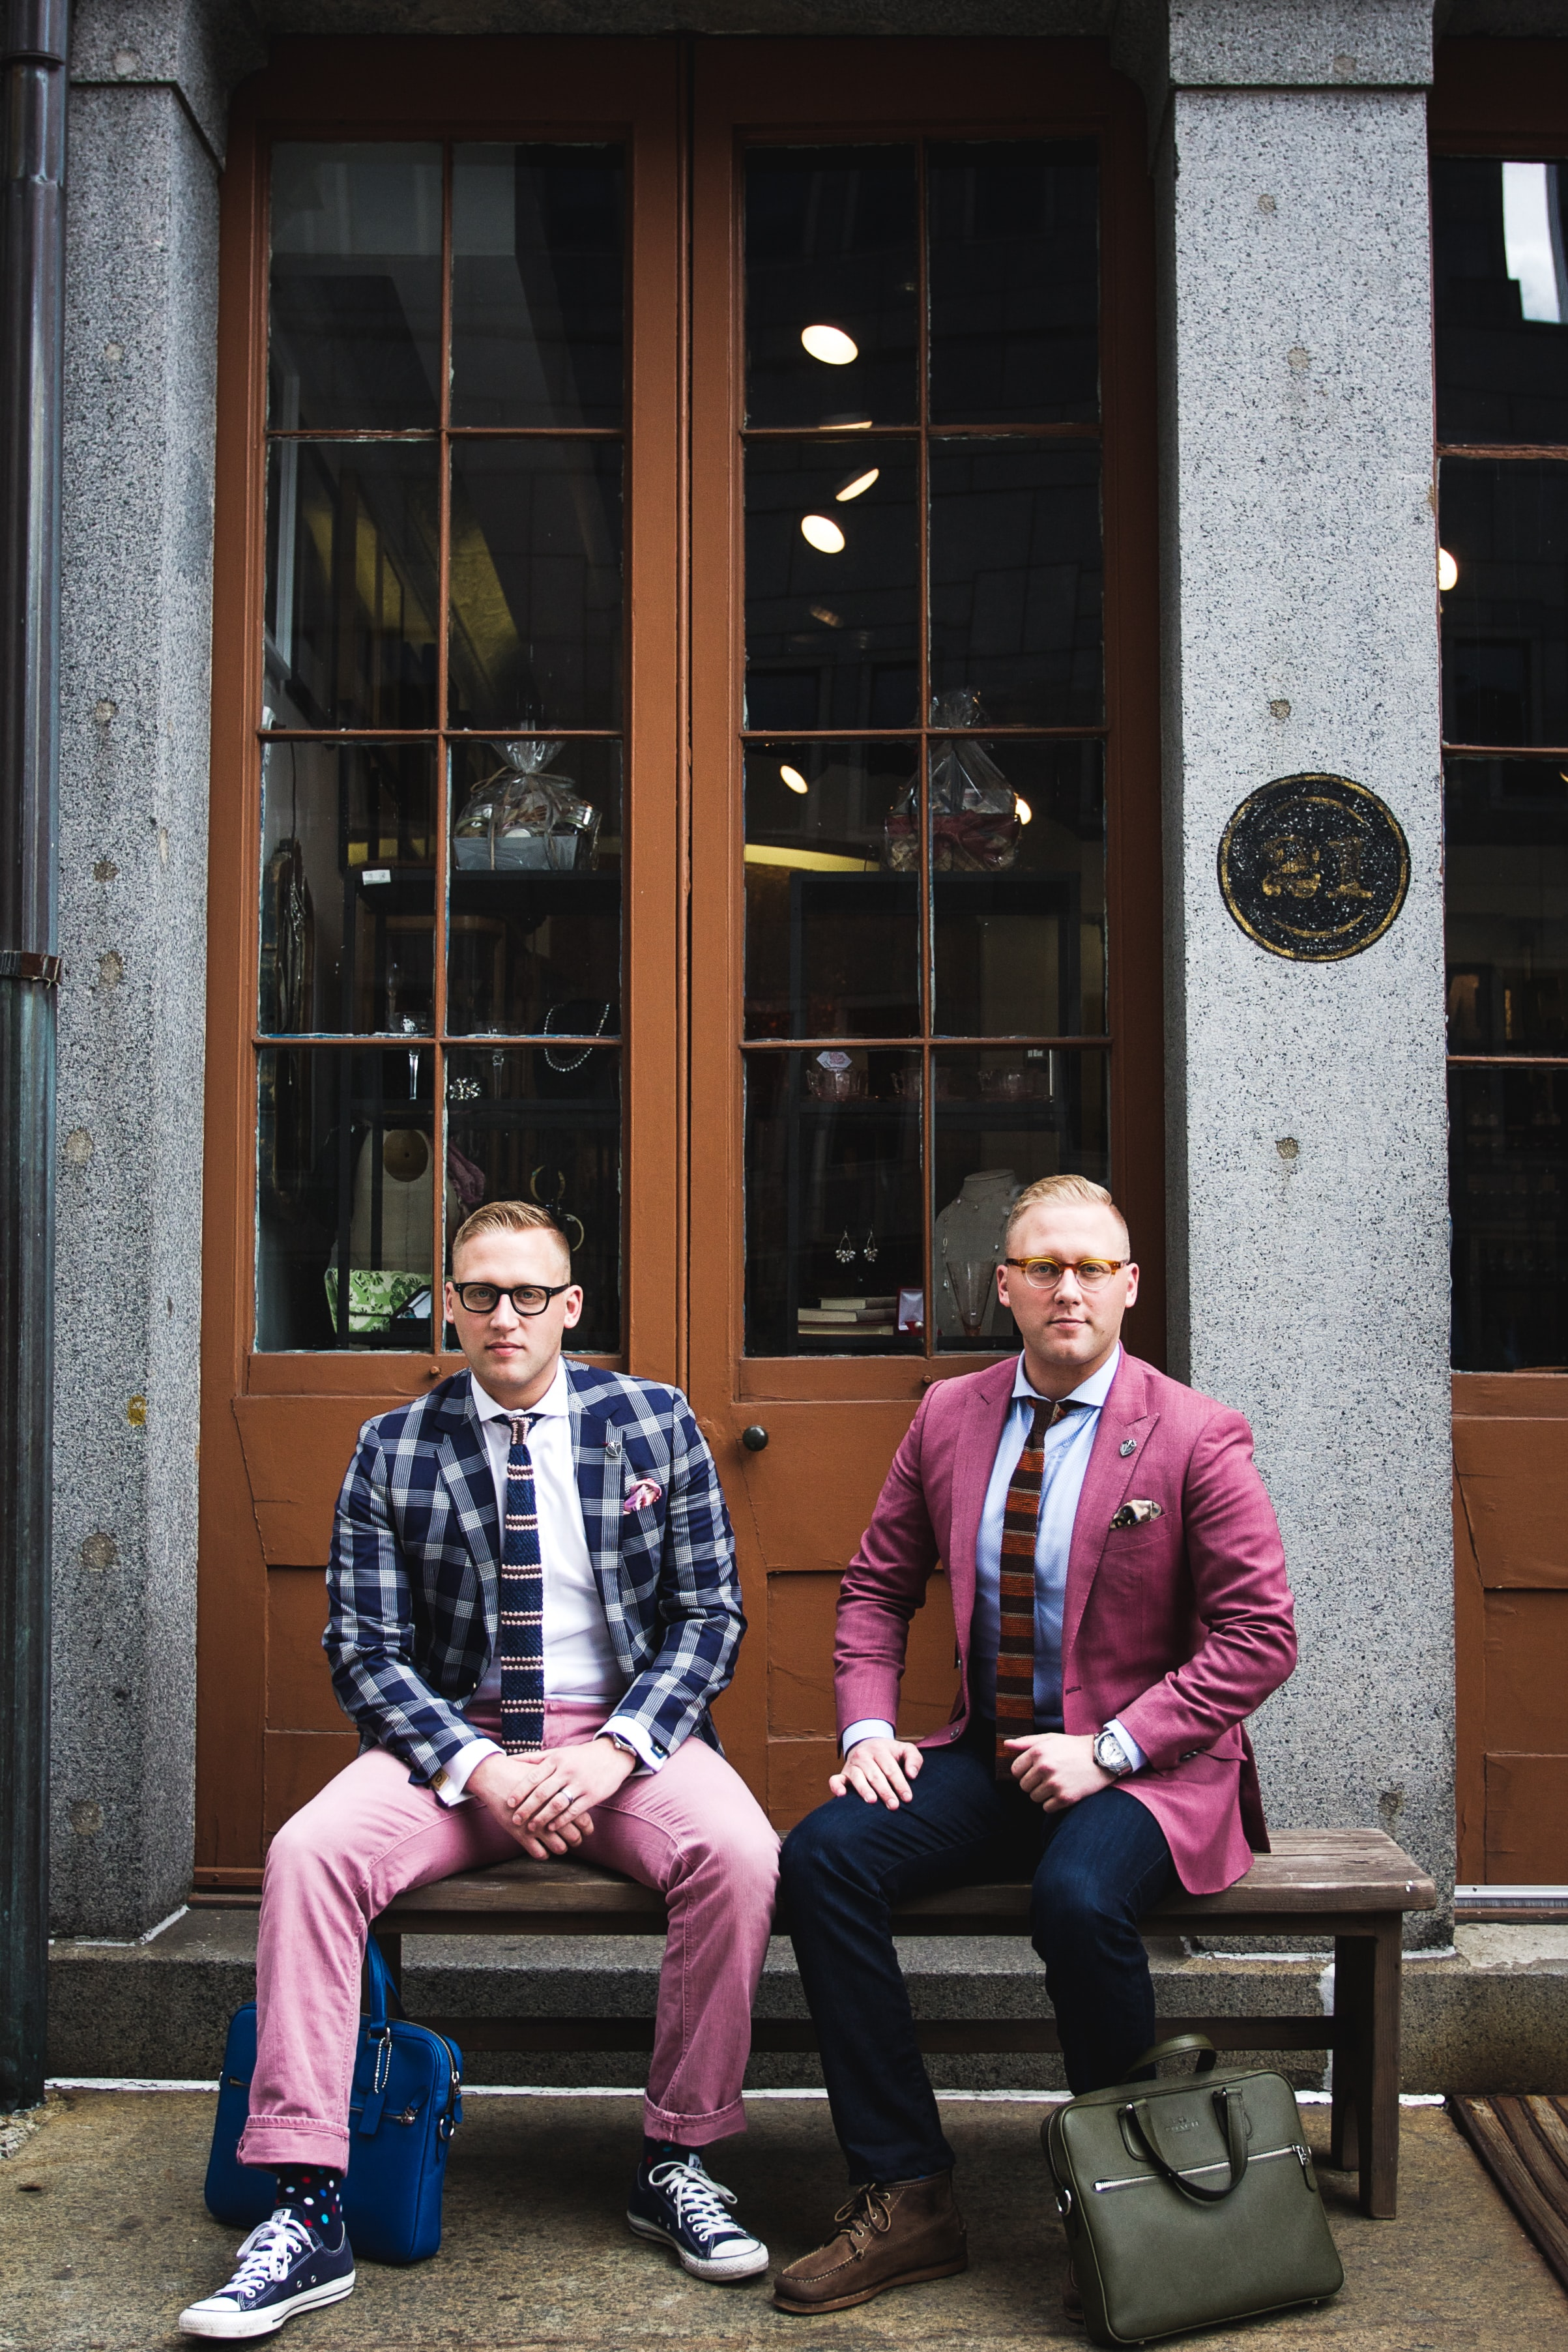 two man in formal suit sitting on bench chair